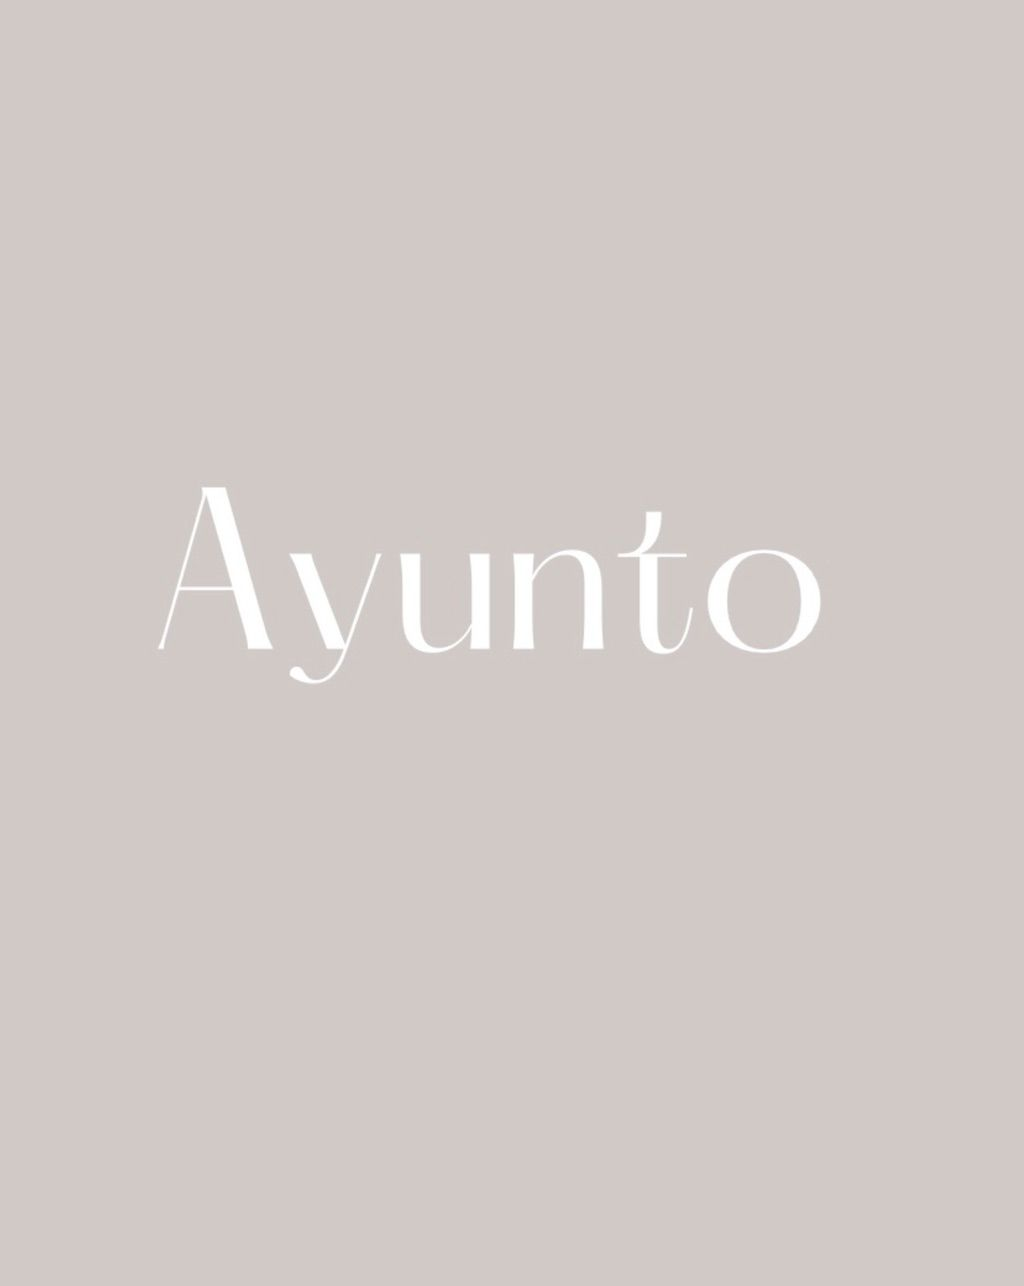 Ayunto Design Studio